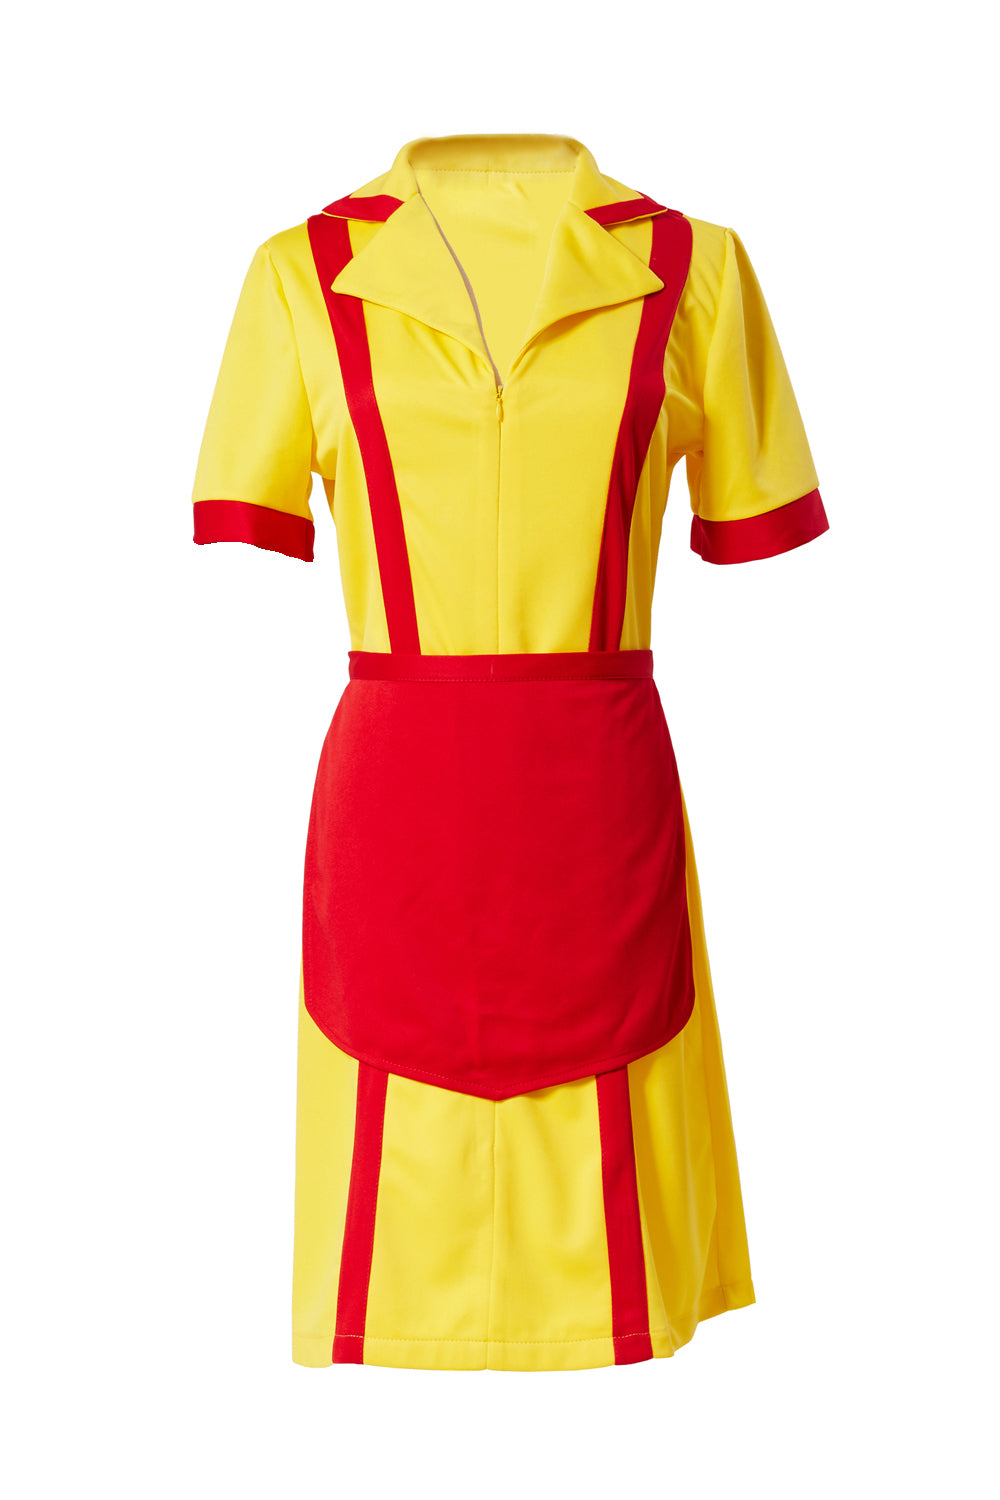 2 Broke Girls Max Caroline Kellnerinnen Uniform Kleid Cosplay Kostüm Länge